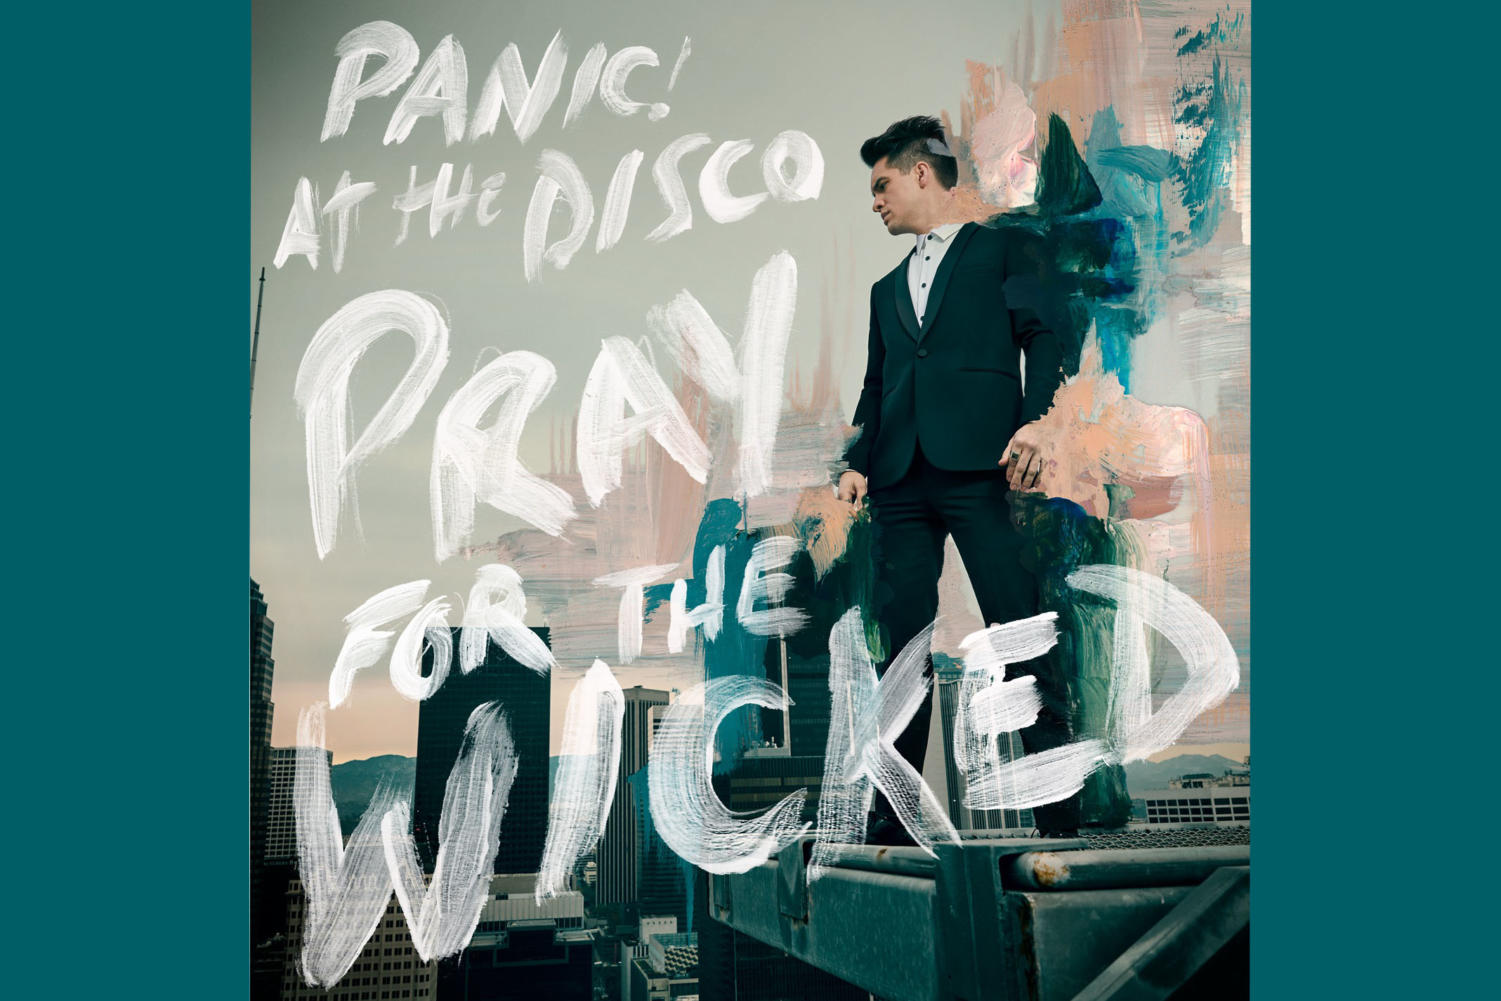 Don't Panic! They're Back: Panic! at the Disco Announces New Album, Tour